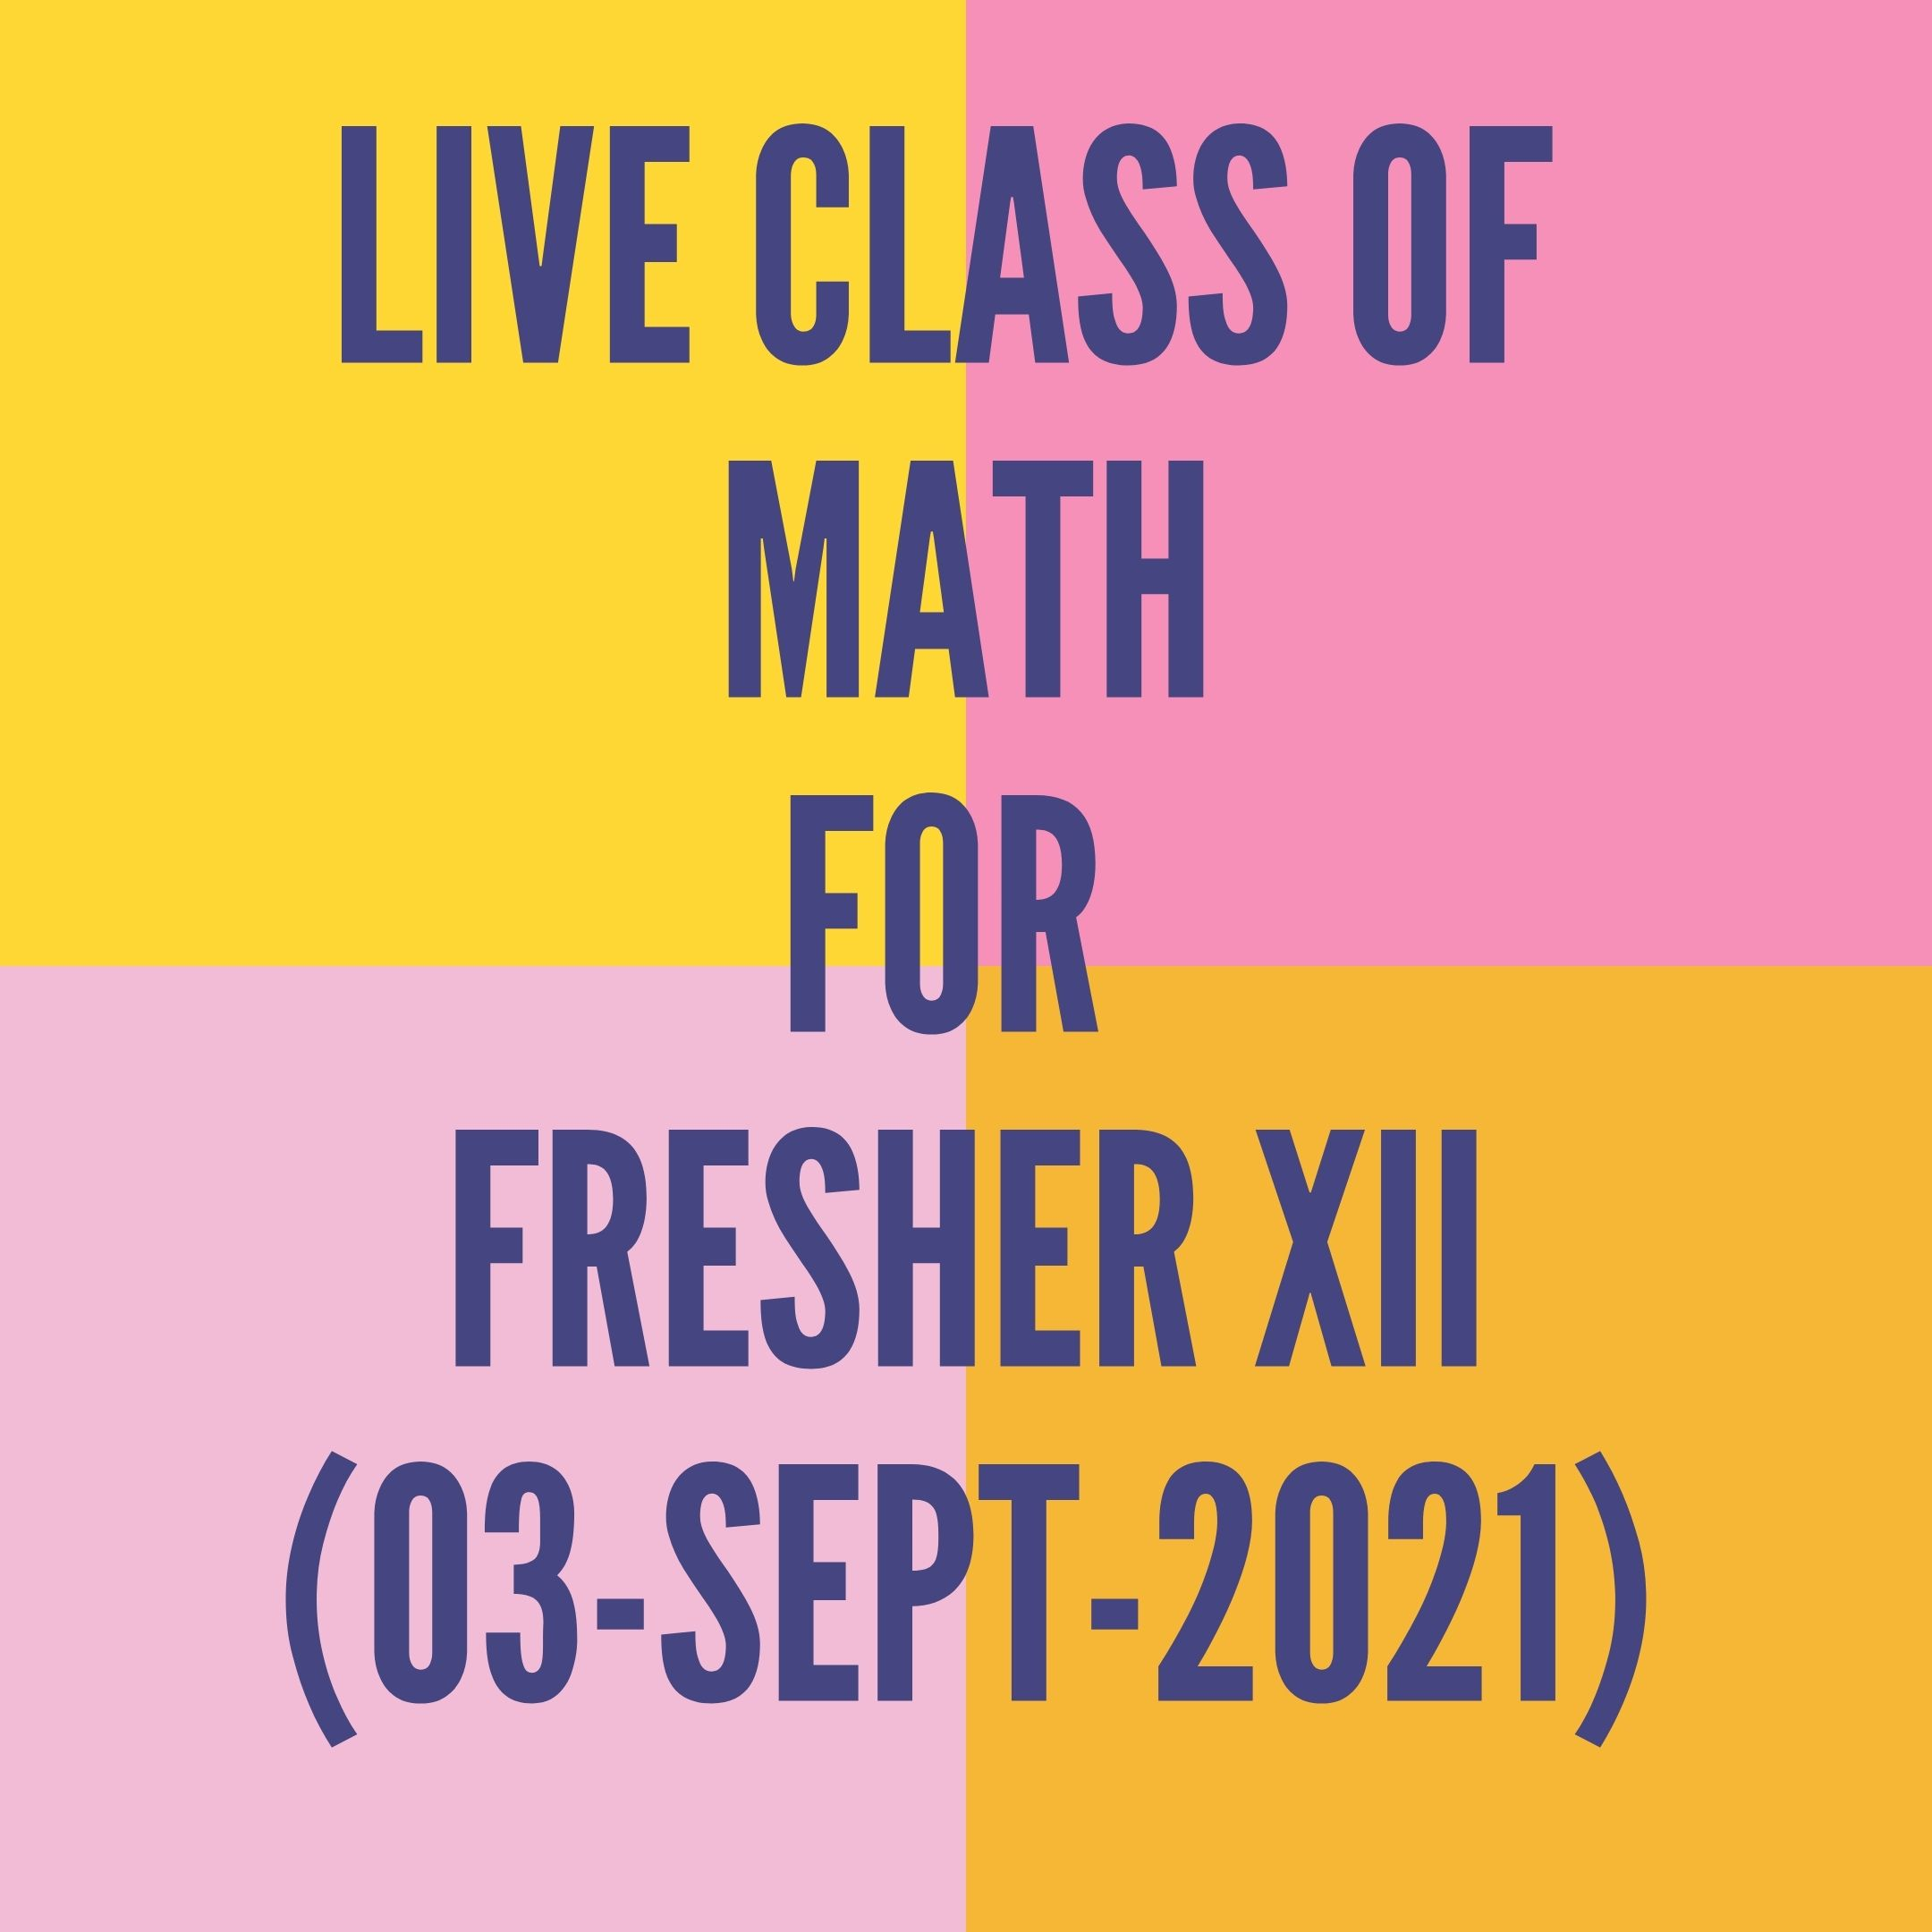 LIVE CLASS OF MATH FOR FRESHER (03-SEPT-2021)